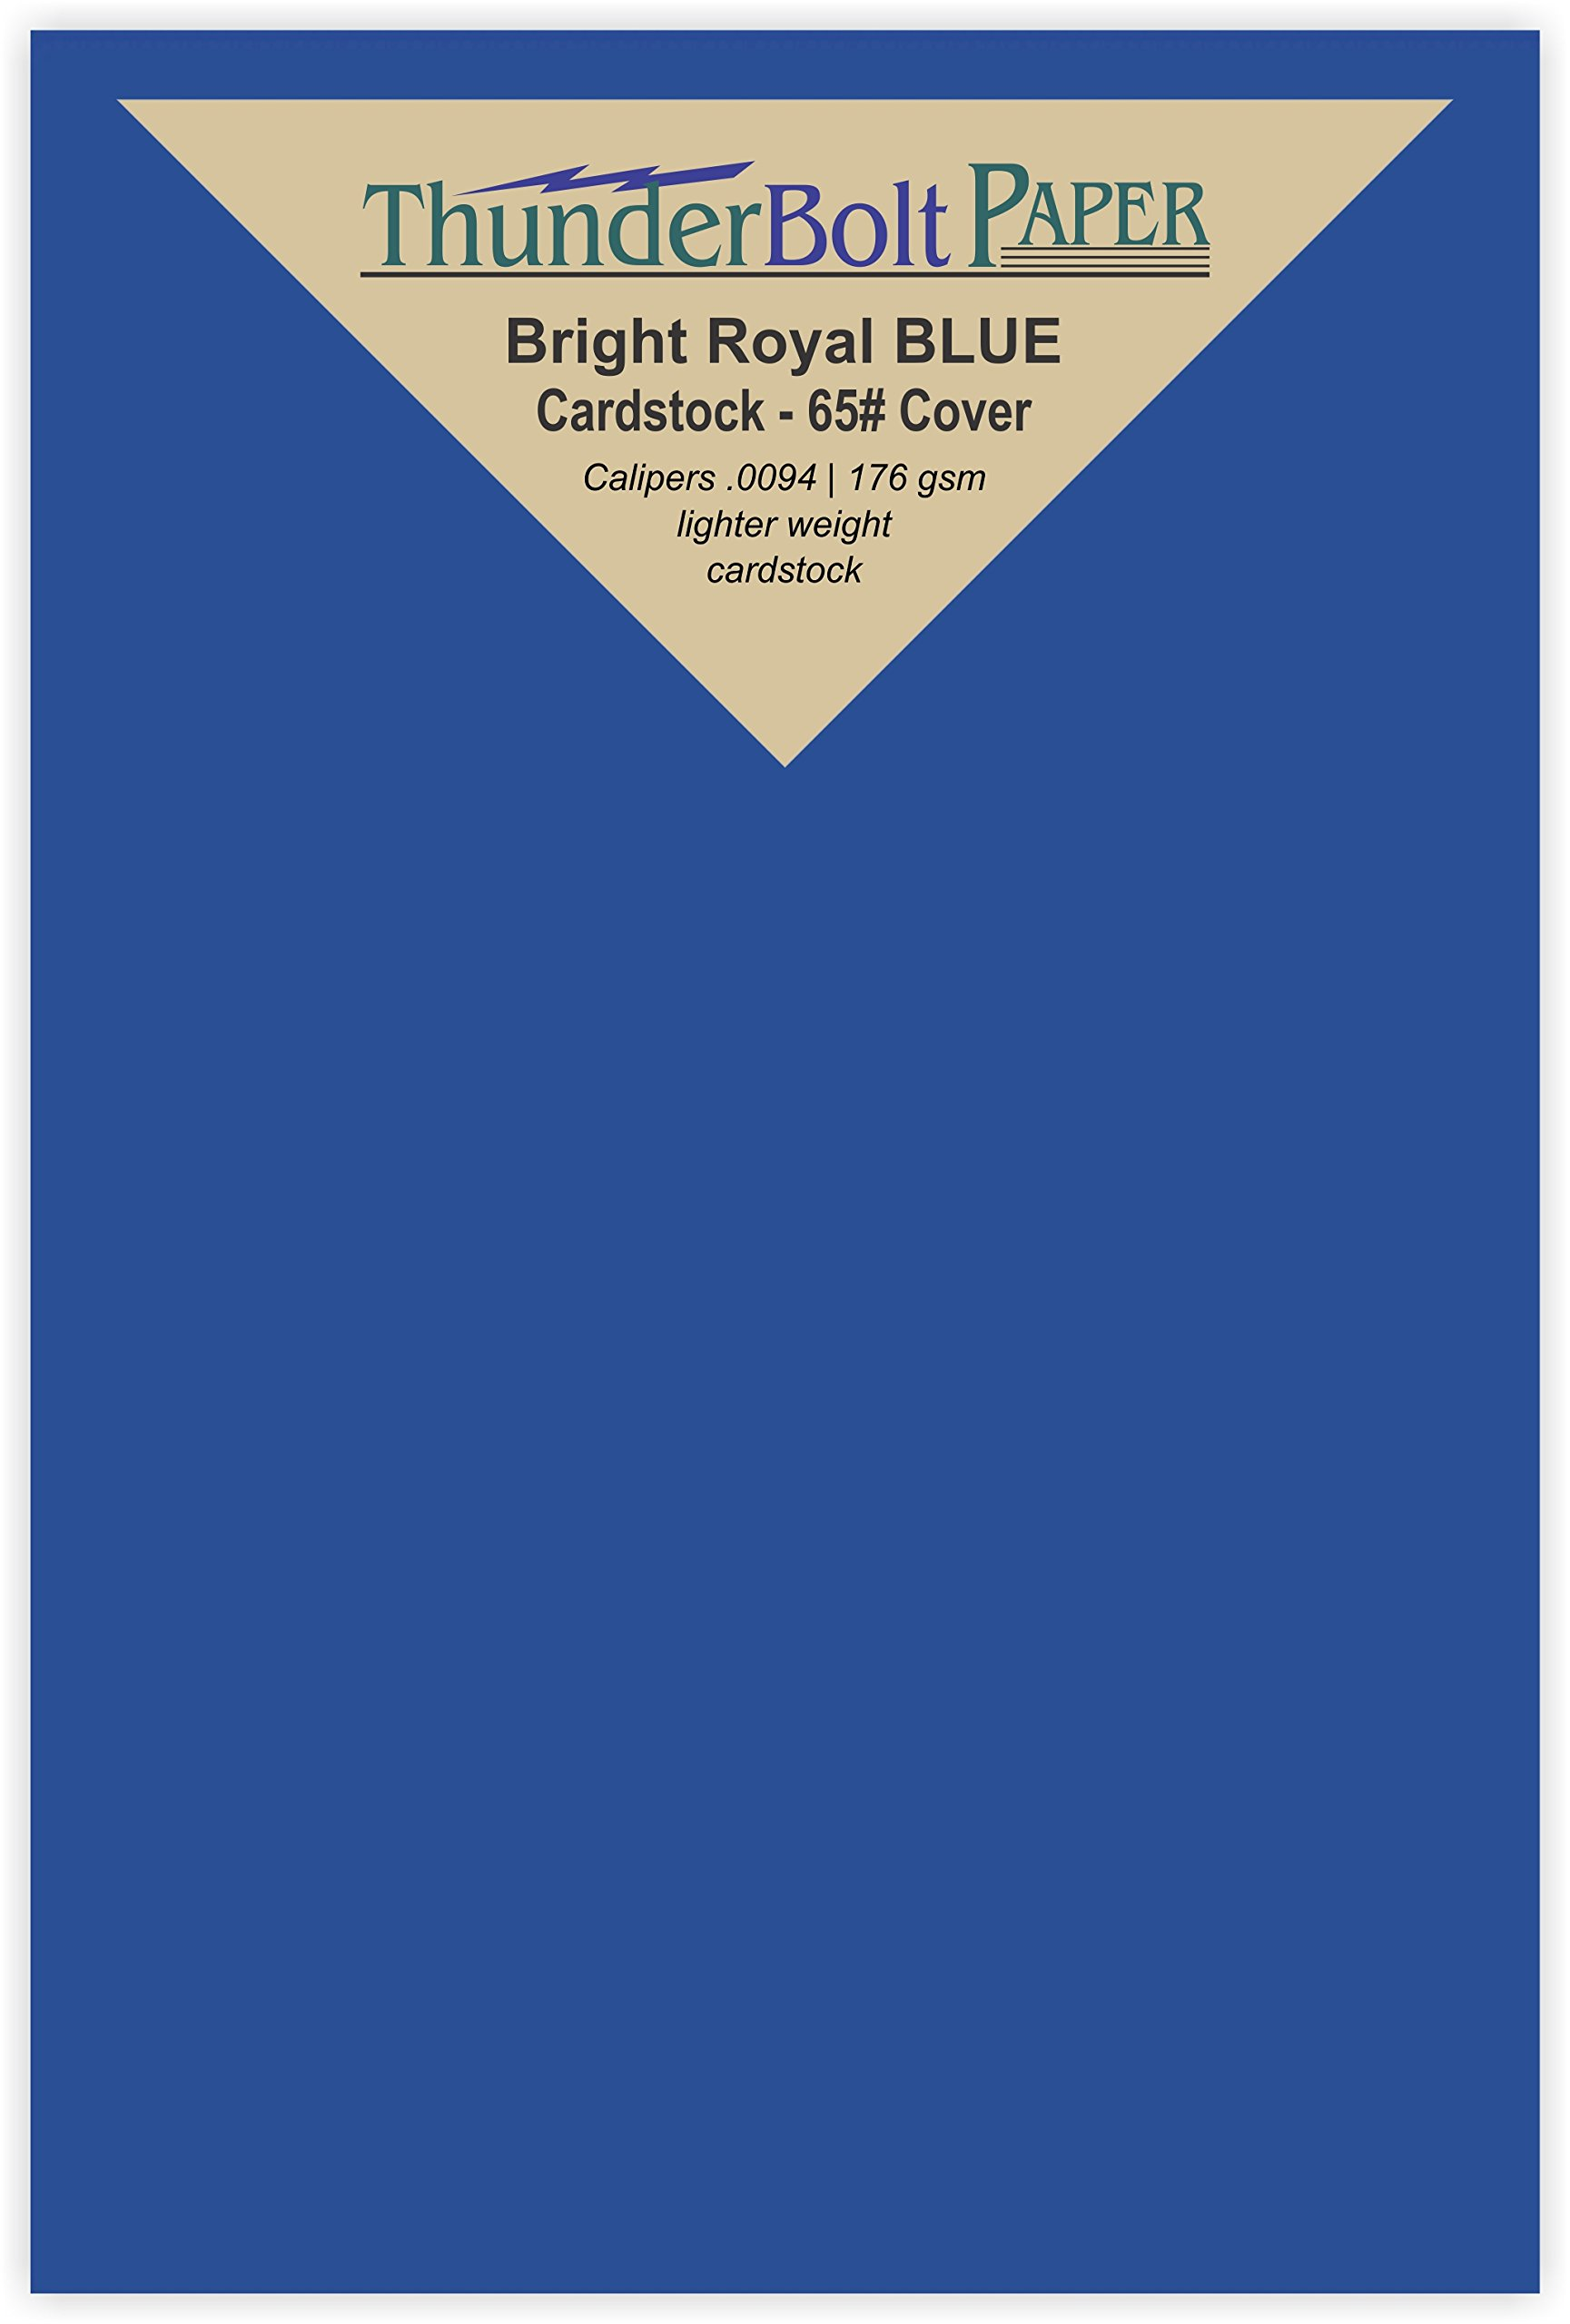 50 Bright Royal Blue 65# Cardstock Paper 4'' X 6'' (4X6 Inches) Photo|Card|Frame Size - 65Cover/45Bond Light Weight Card Stock - Bright Printable Smooth Paper Surface